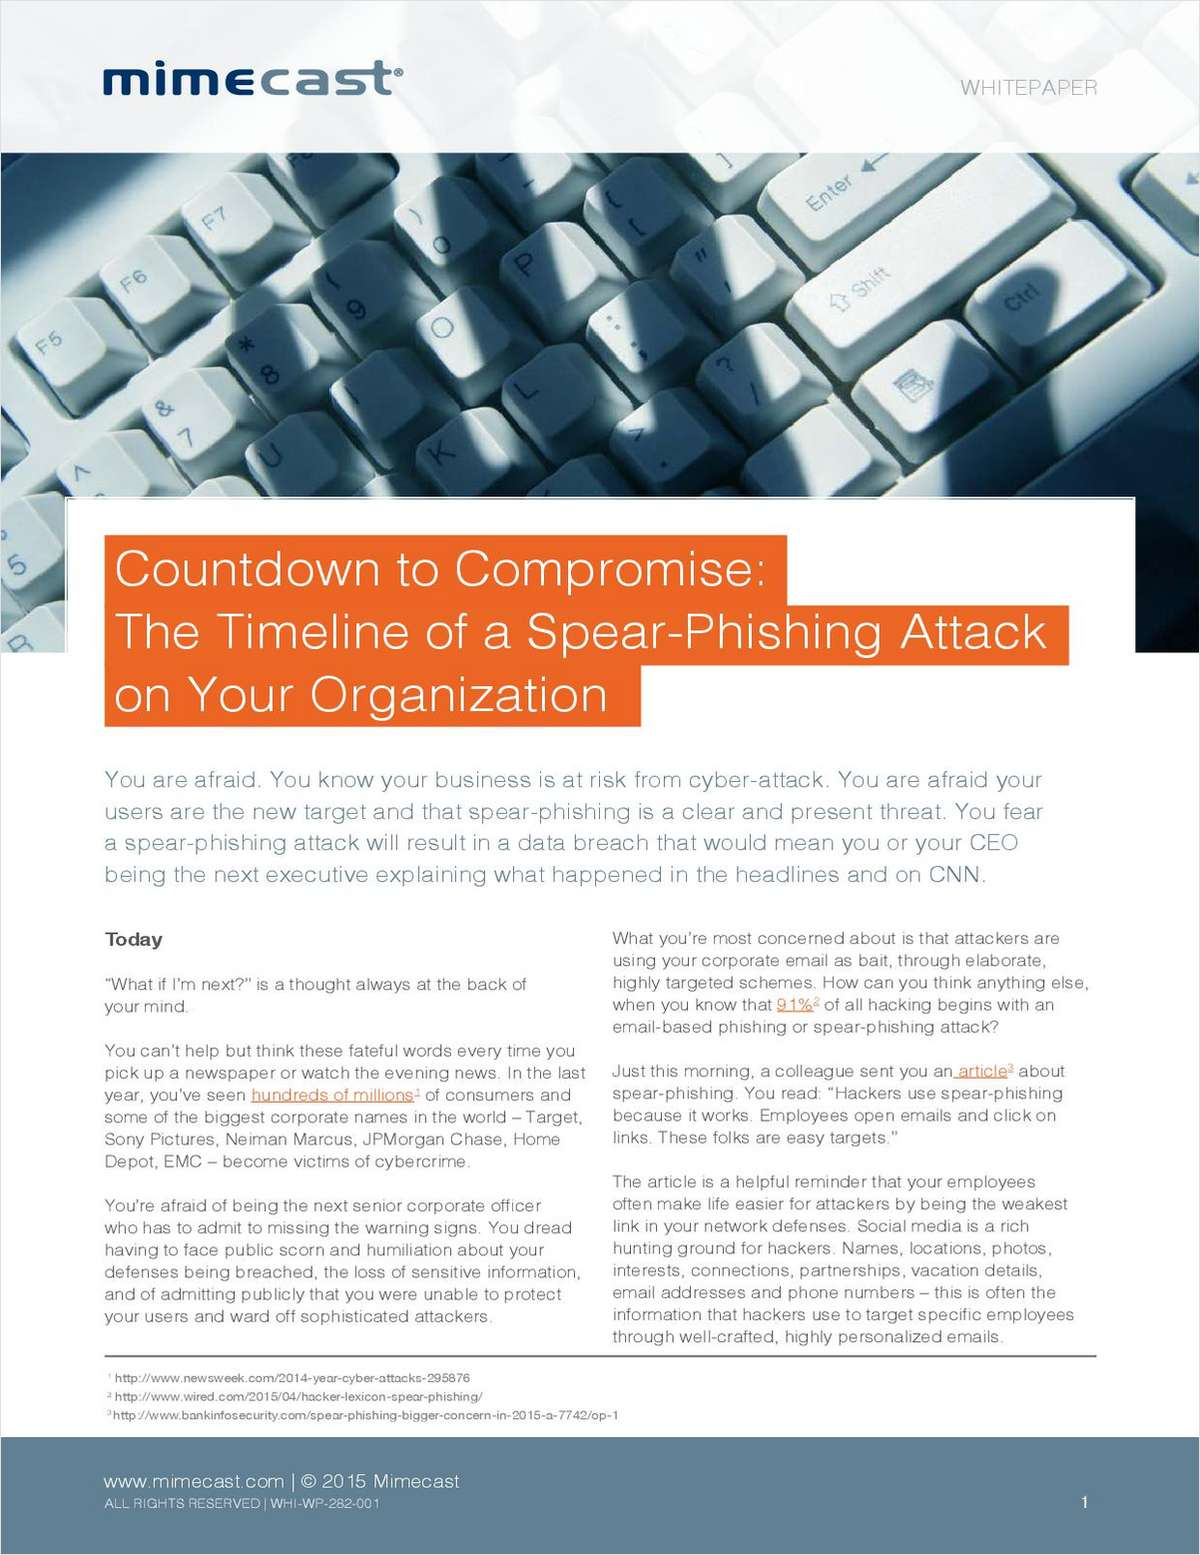 Countdown to Compromise: The Timeline of a Spear-Phishing Attack on Your Organization